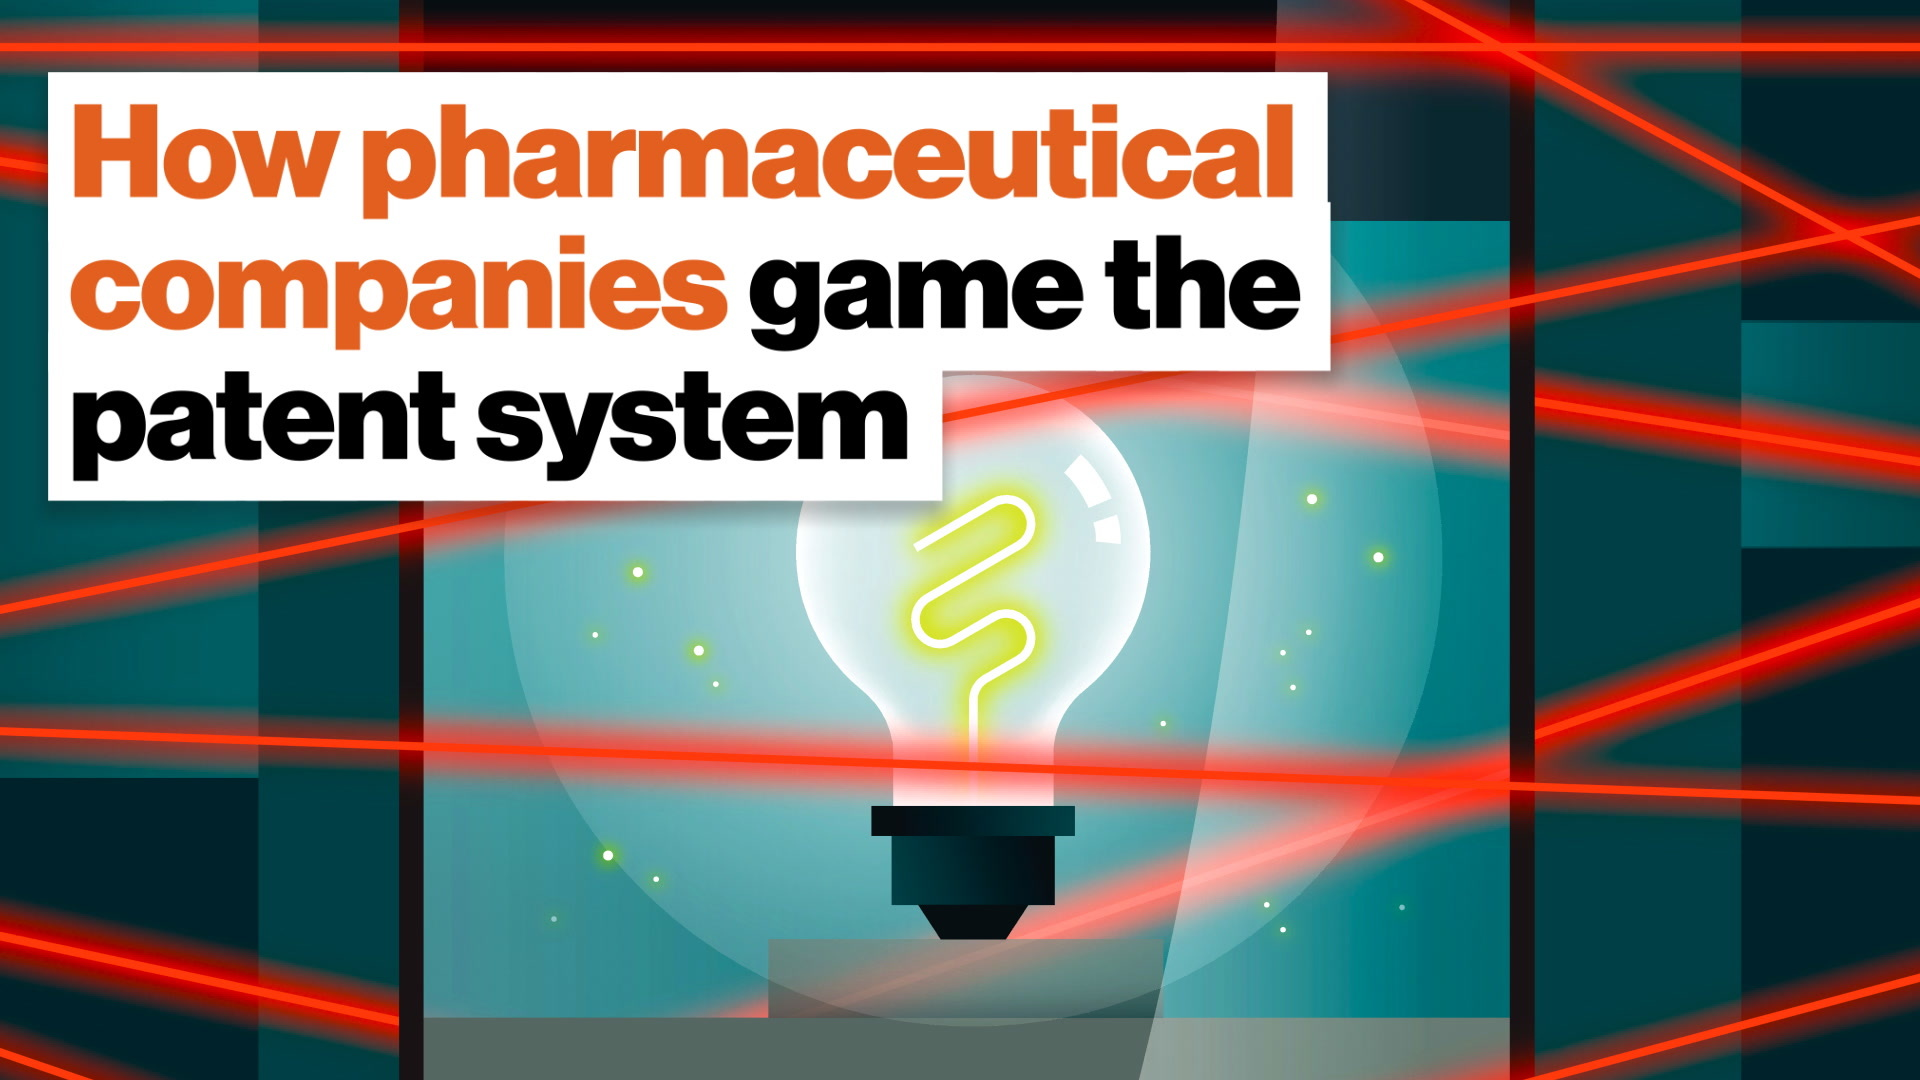 How pharmaceutical companies game the patent system